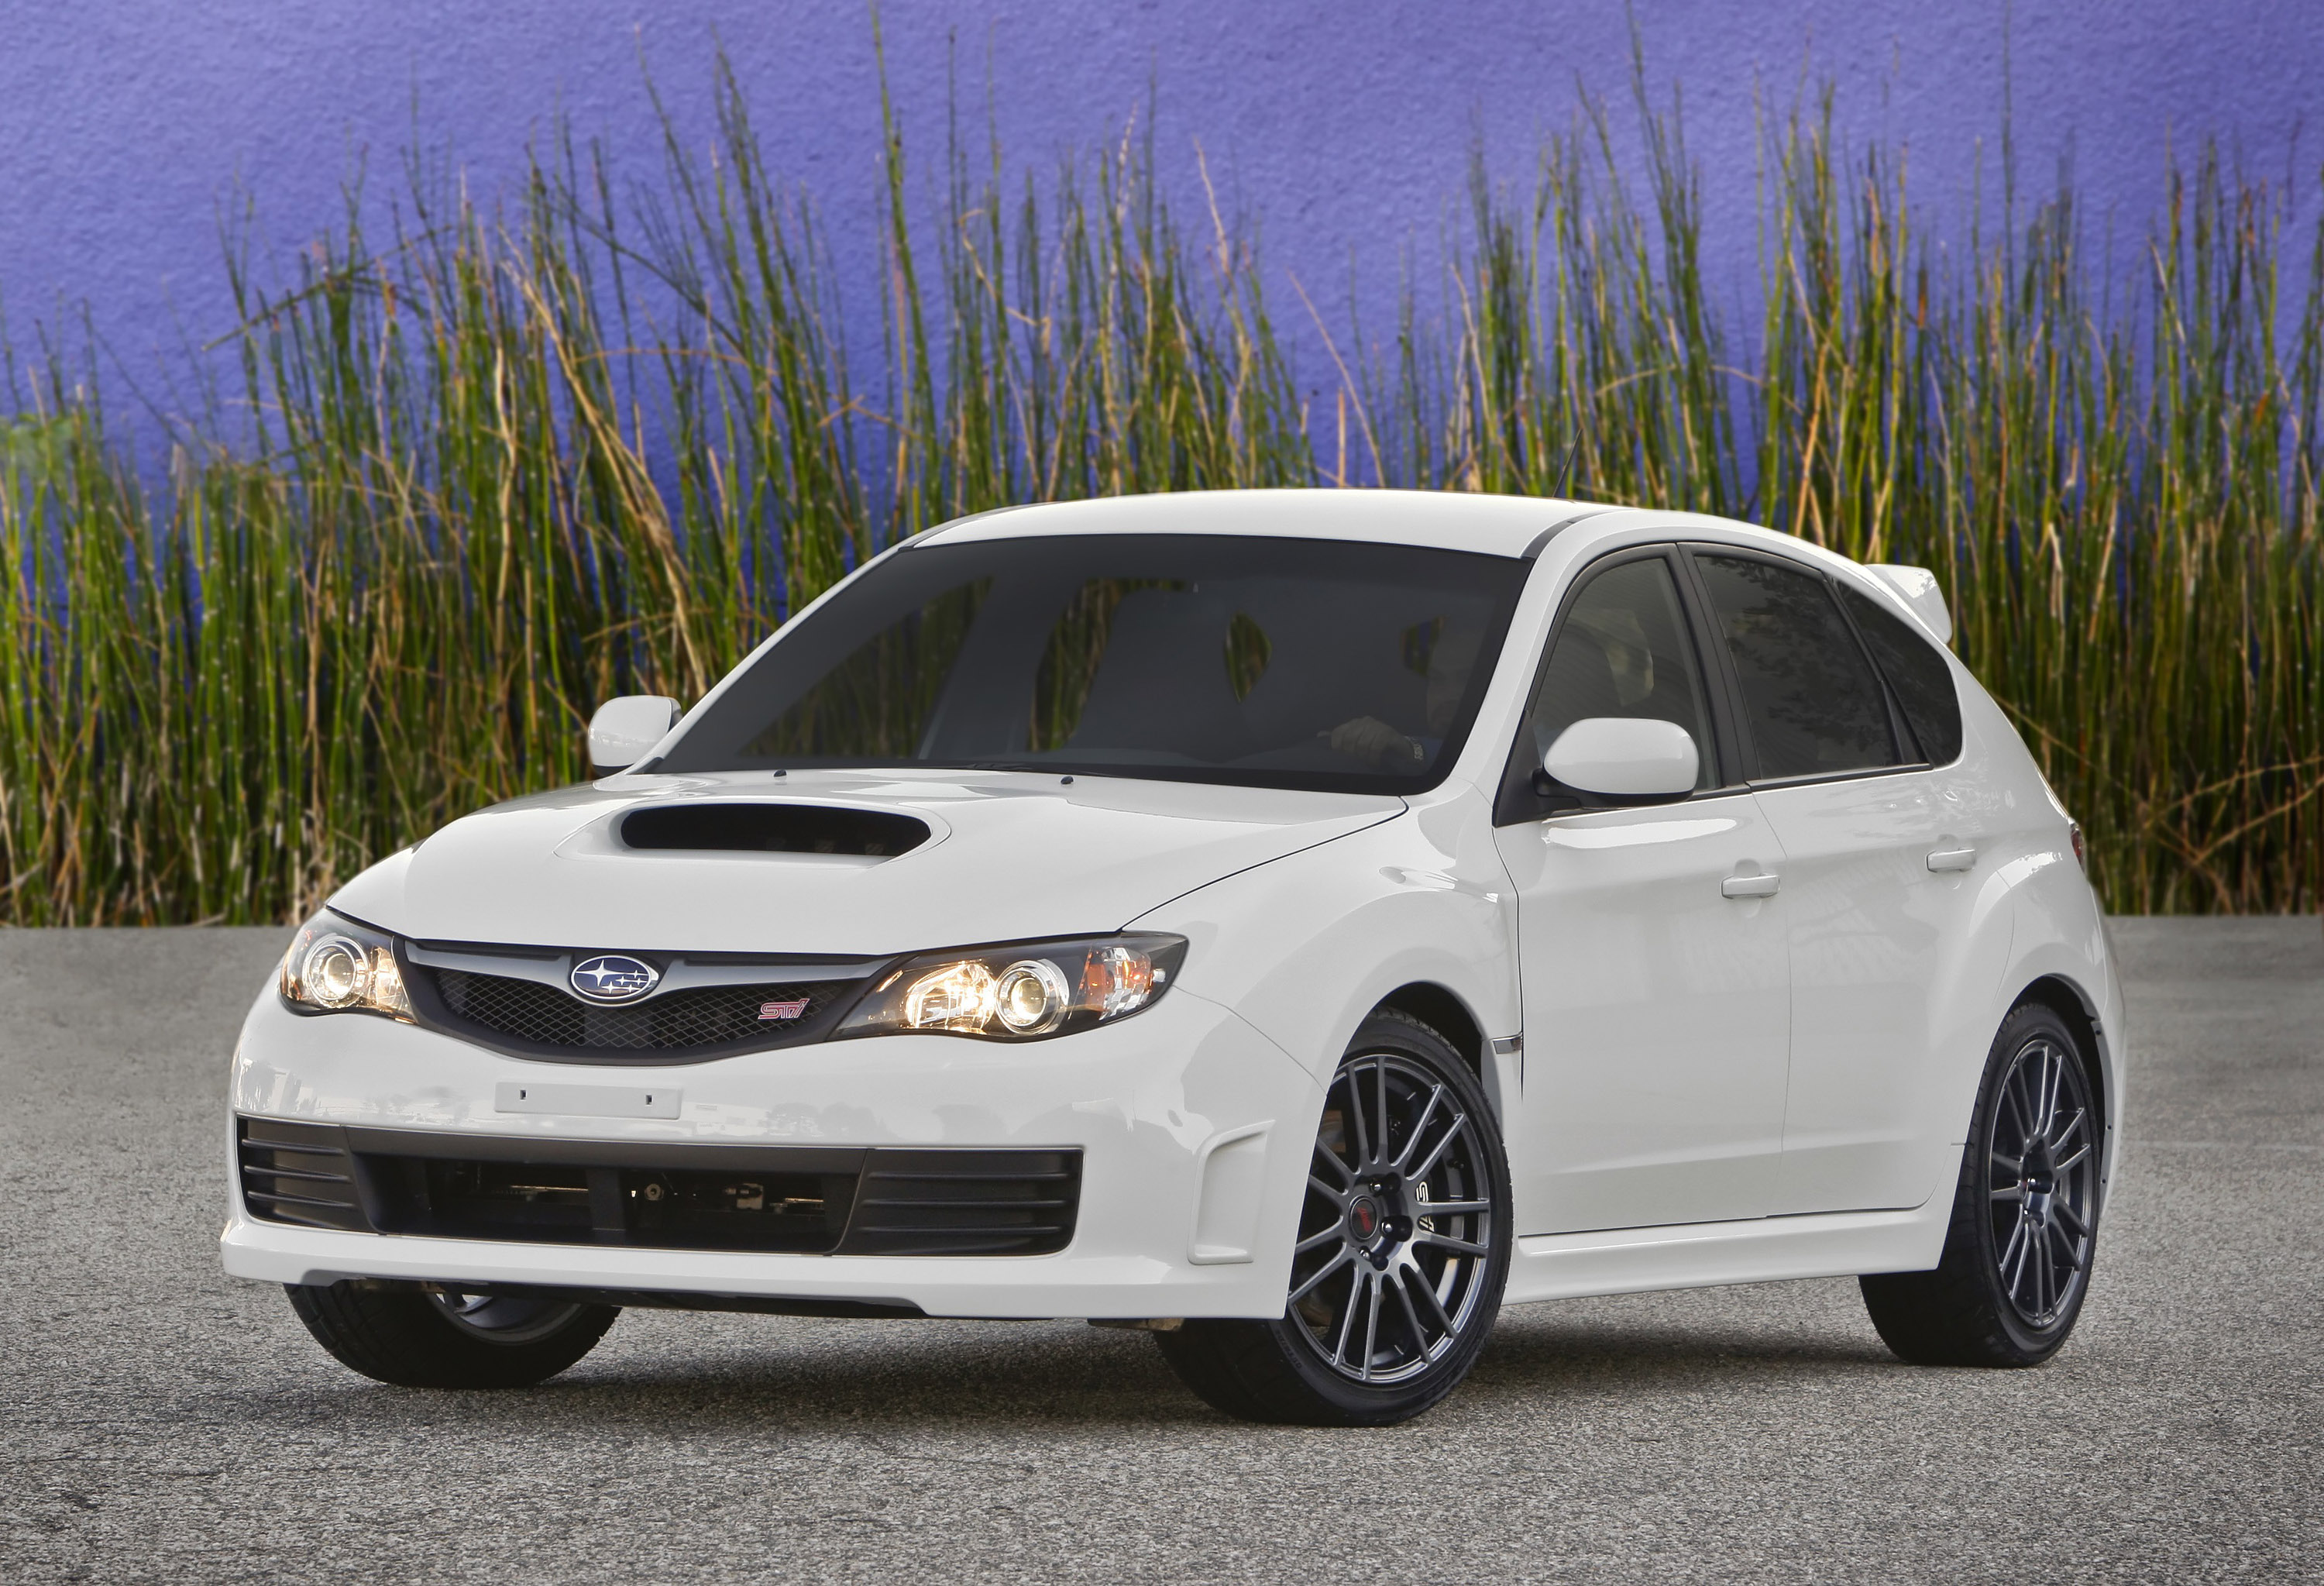 2010 subaru impreza wrx sti special edition picture 28816. Black Bedroom Furniture Sets. Home Design Ideas